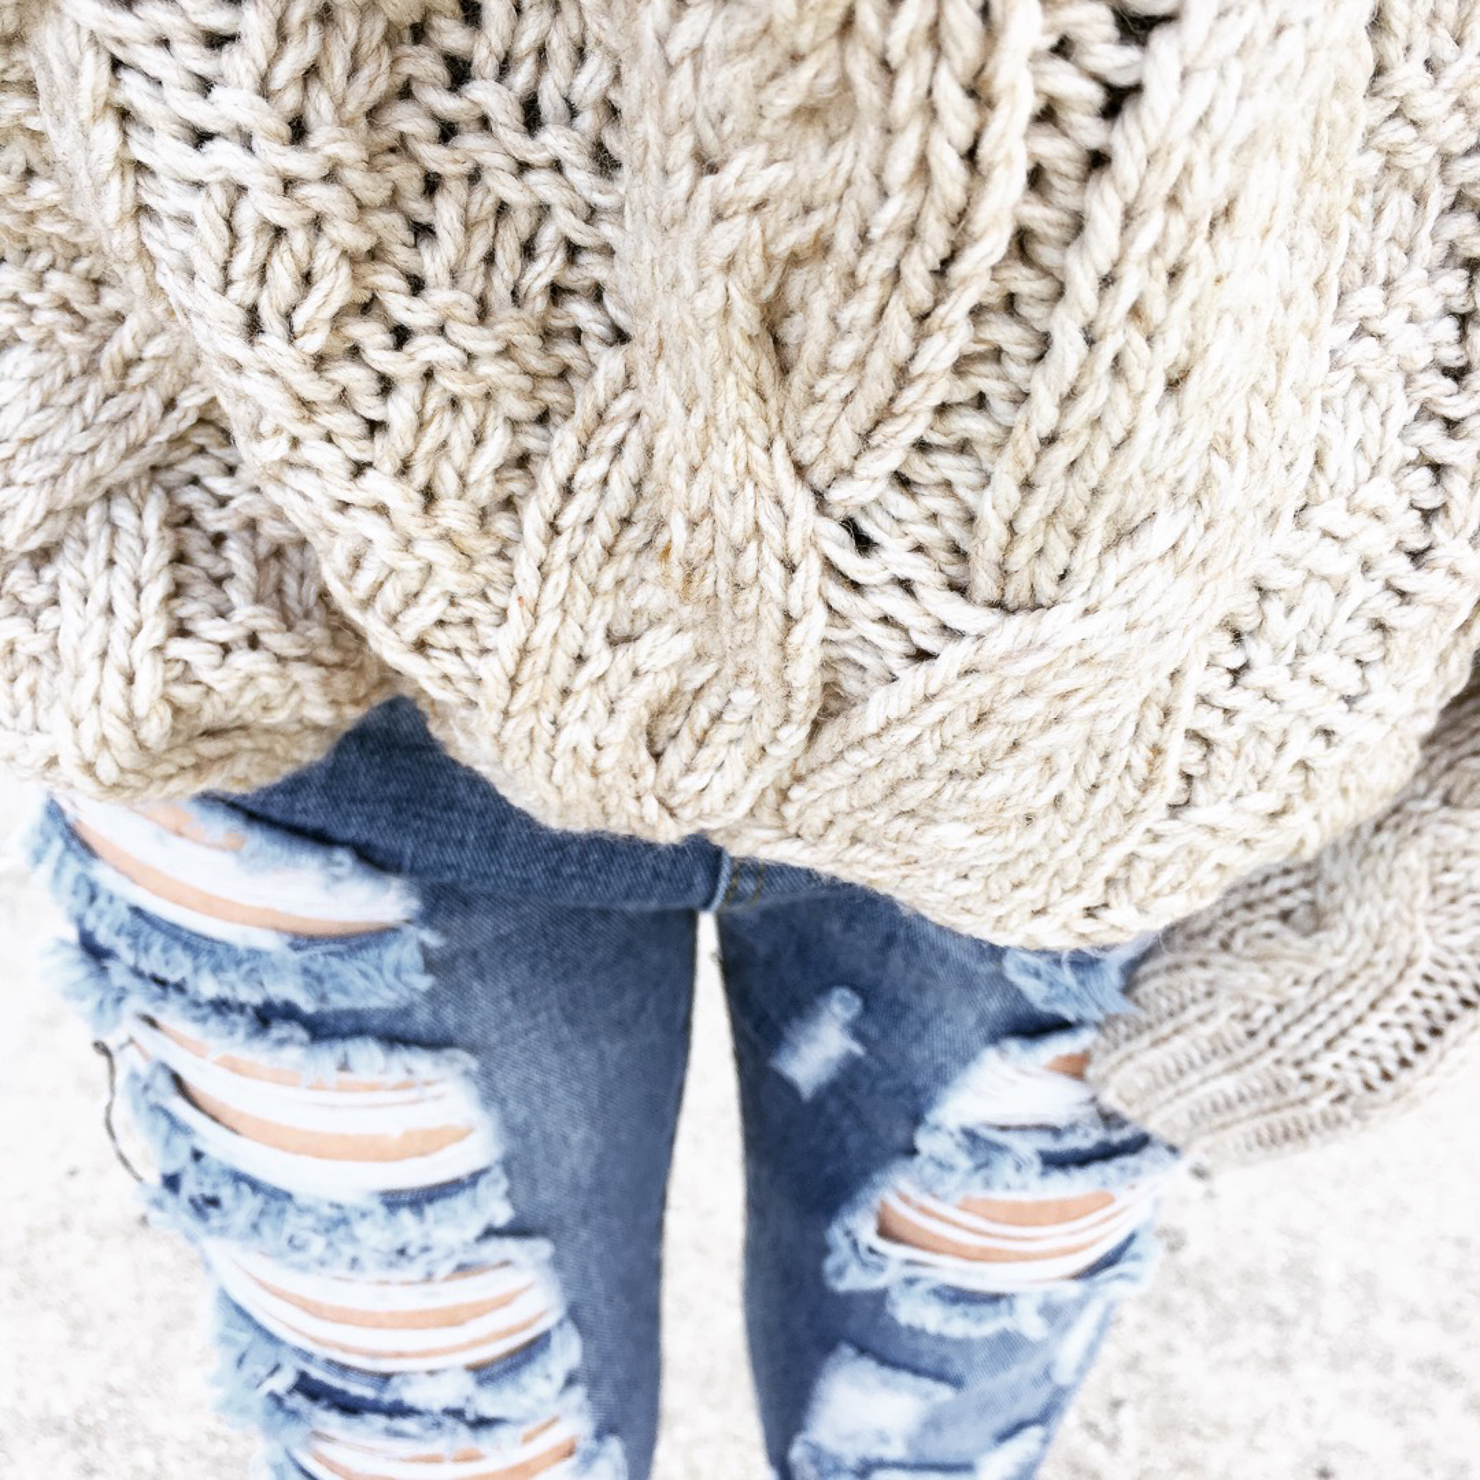 Cozy Fall Outfit Hm Oversized Cable Knit Sweater Distressed Jeans